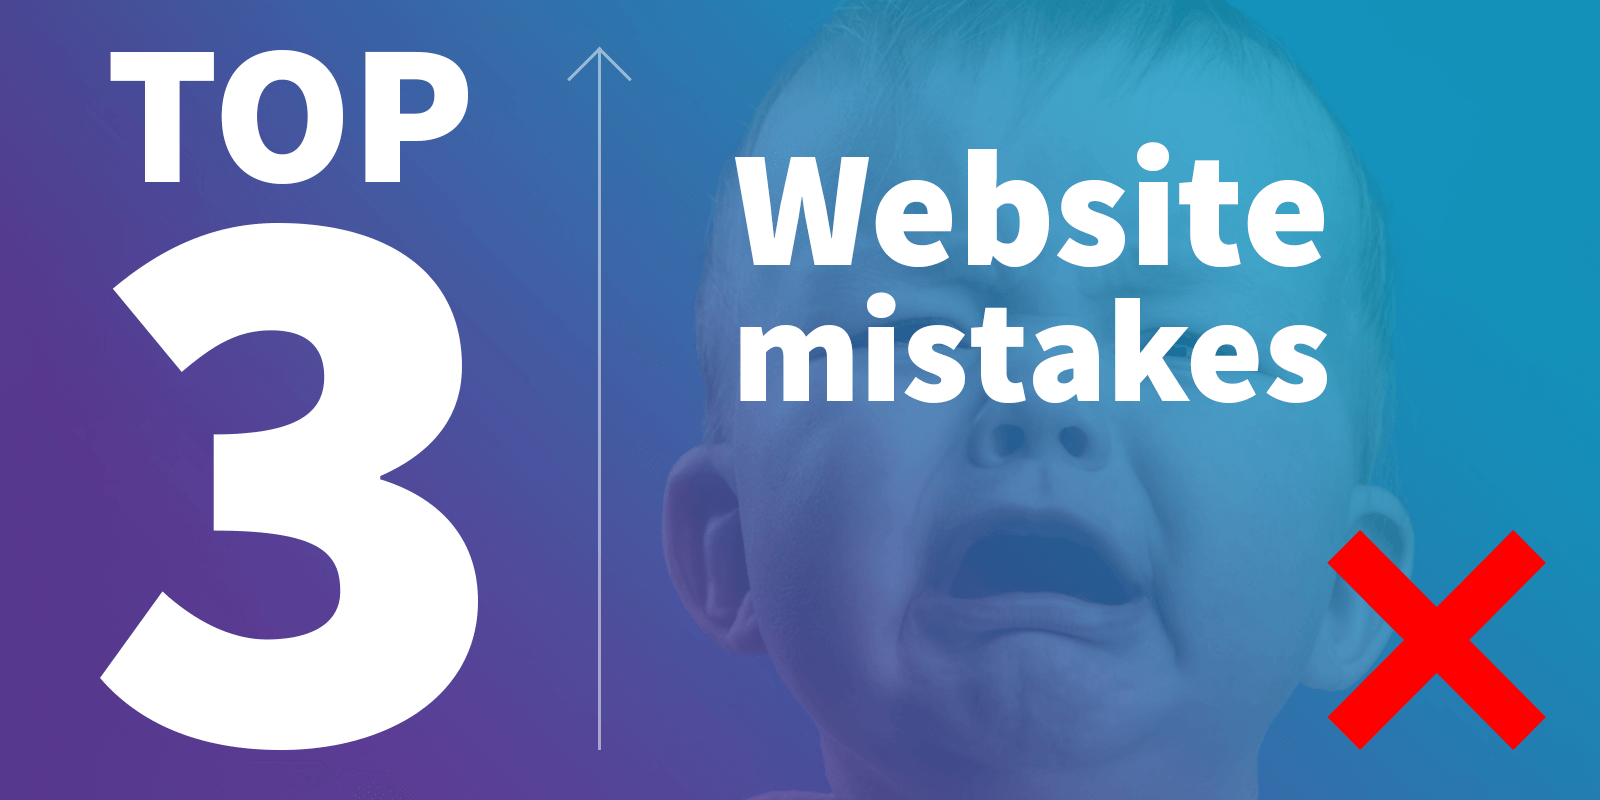 Top 3 website mistakes